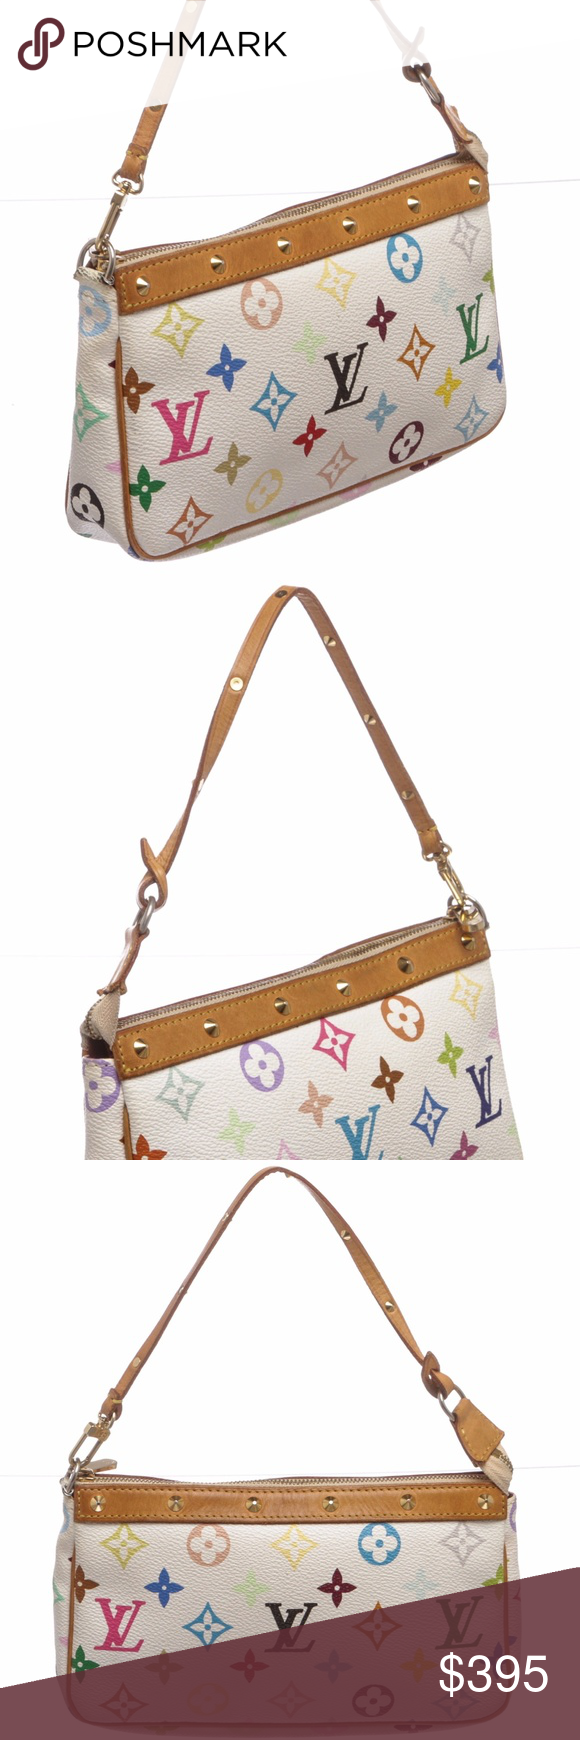 fe95b828c3d6 Louis Vuitton White Pochette Bag From the Takashi Murakami Collection. White  and multicolore monogram coated